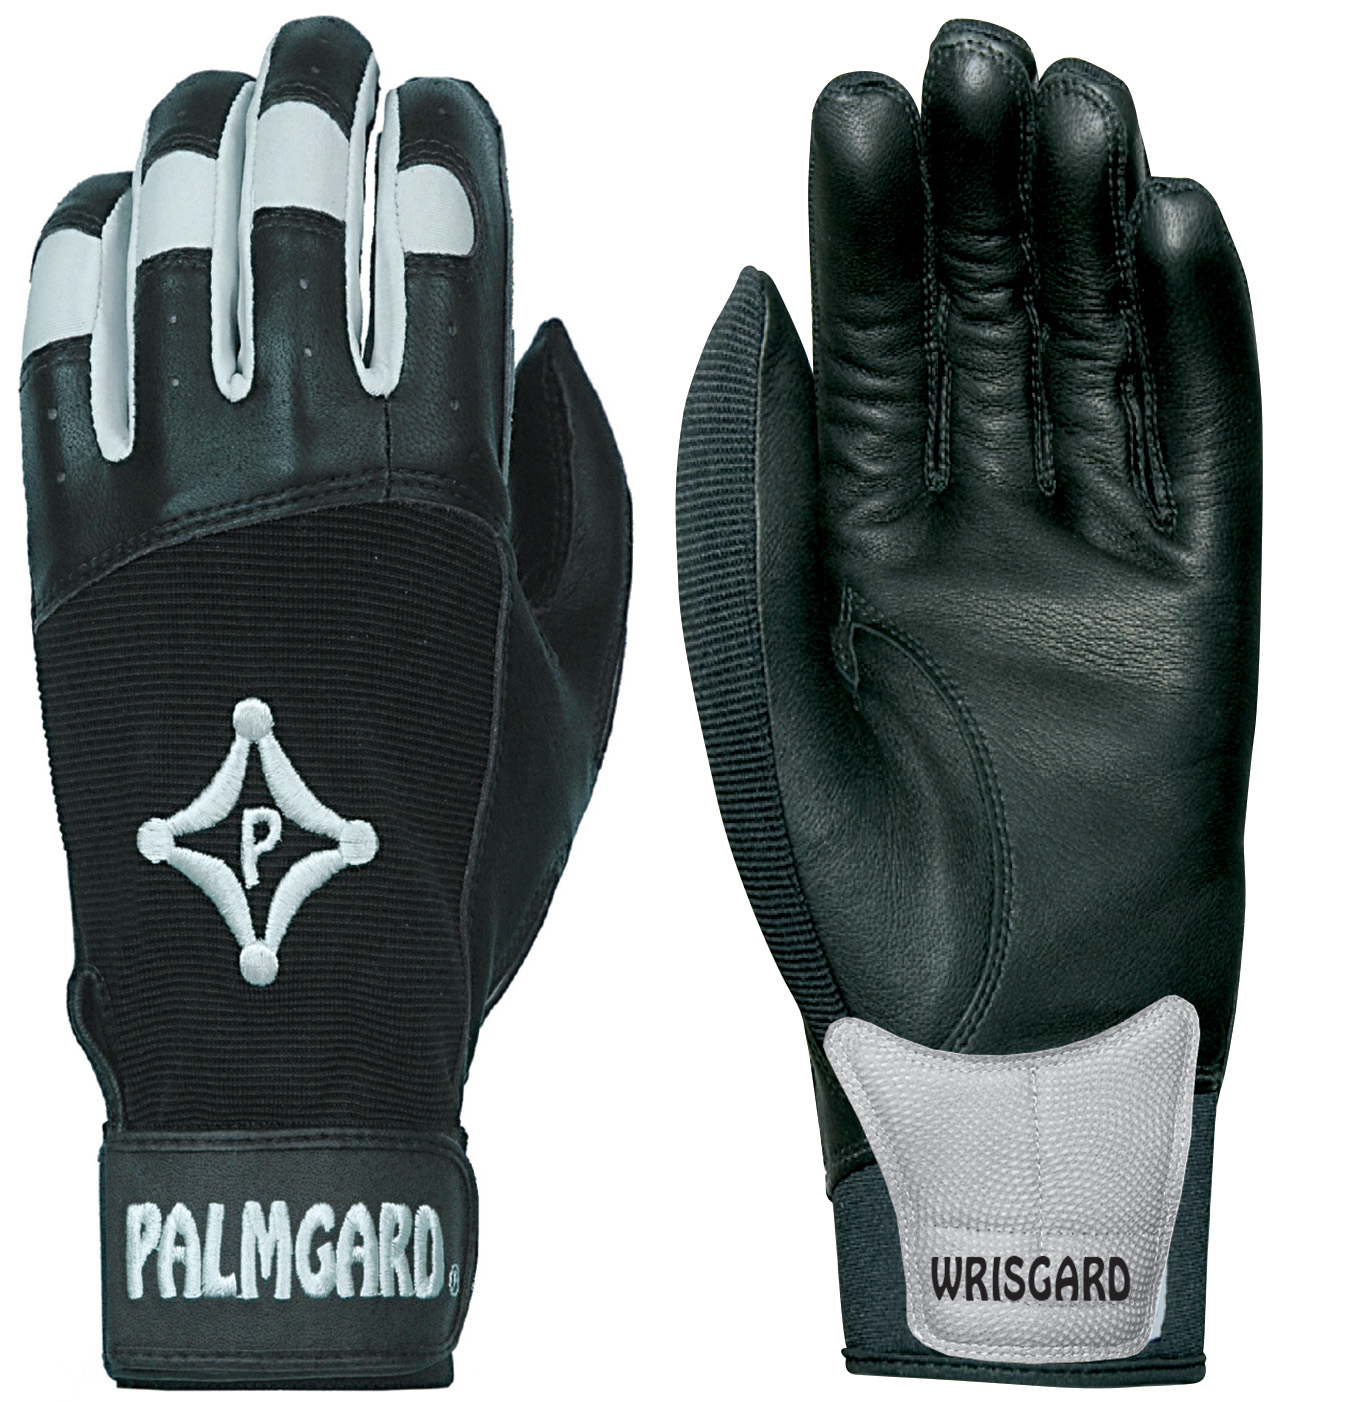 PalmGard® Glove /Wrist Gard Right MAIN